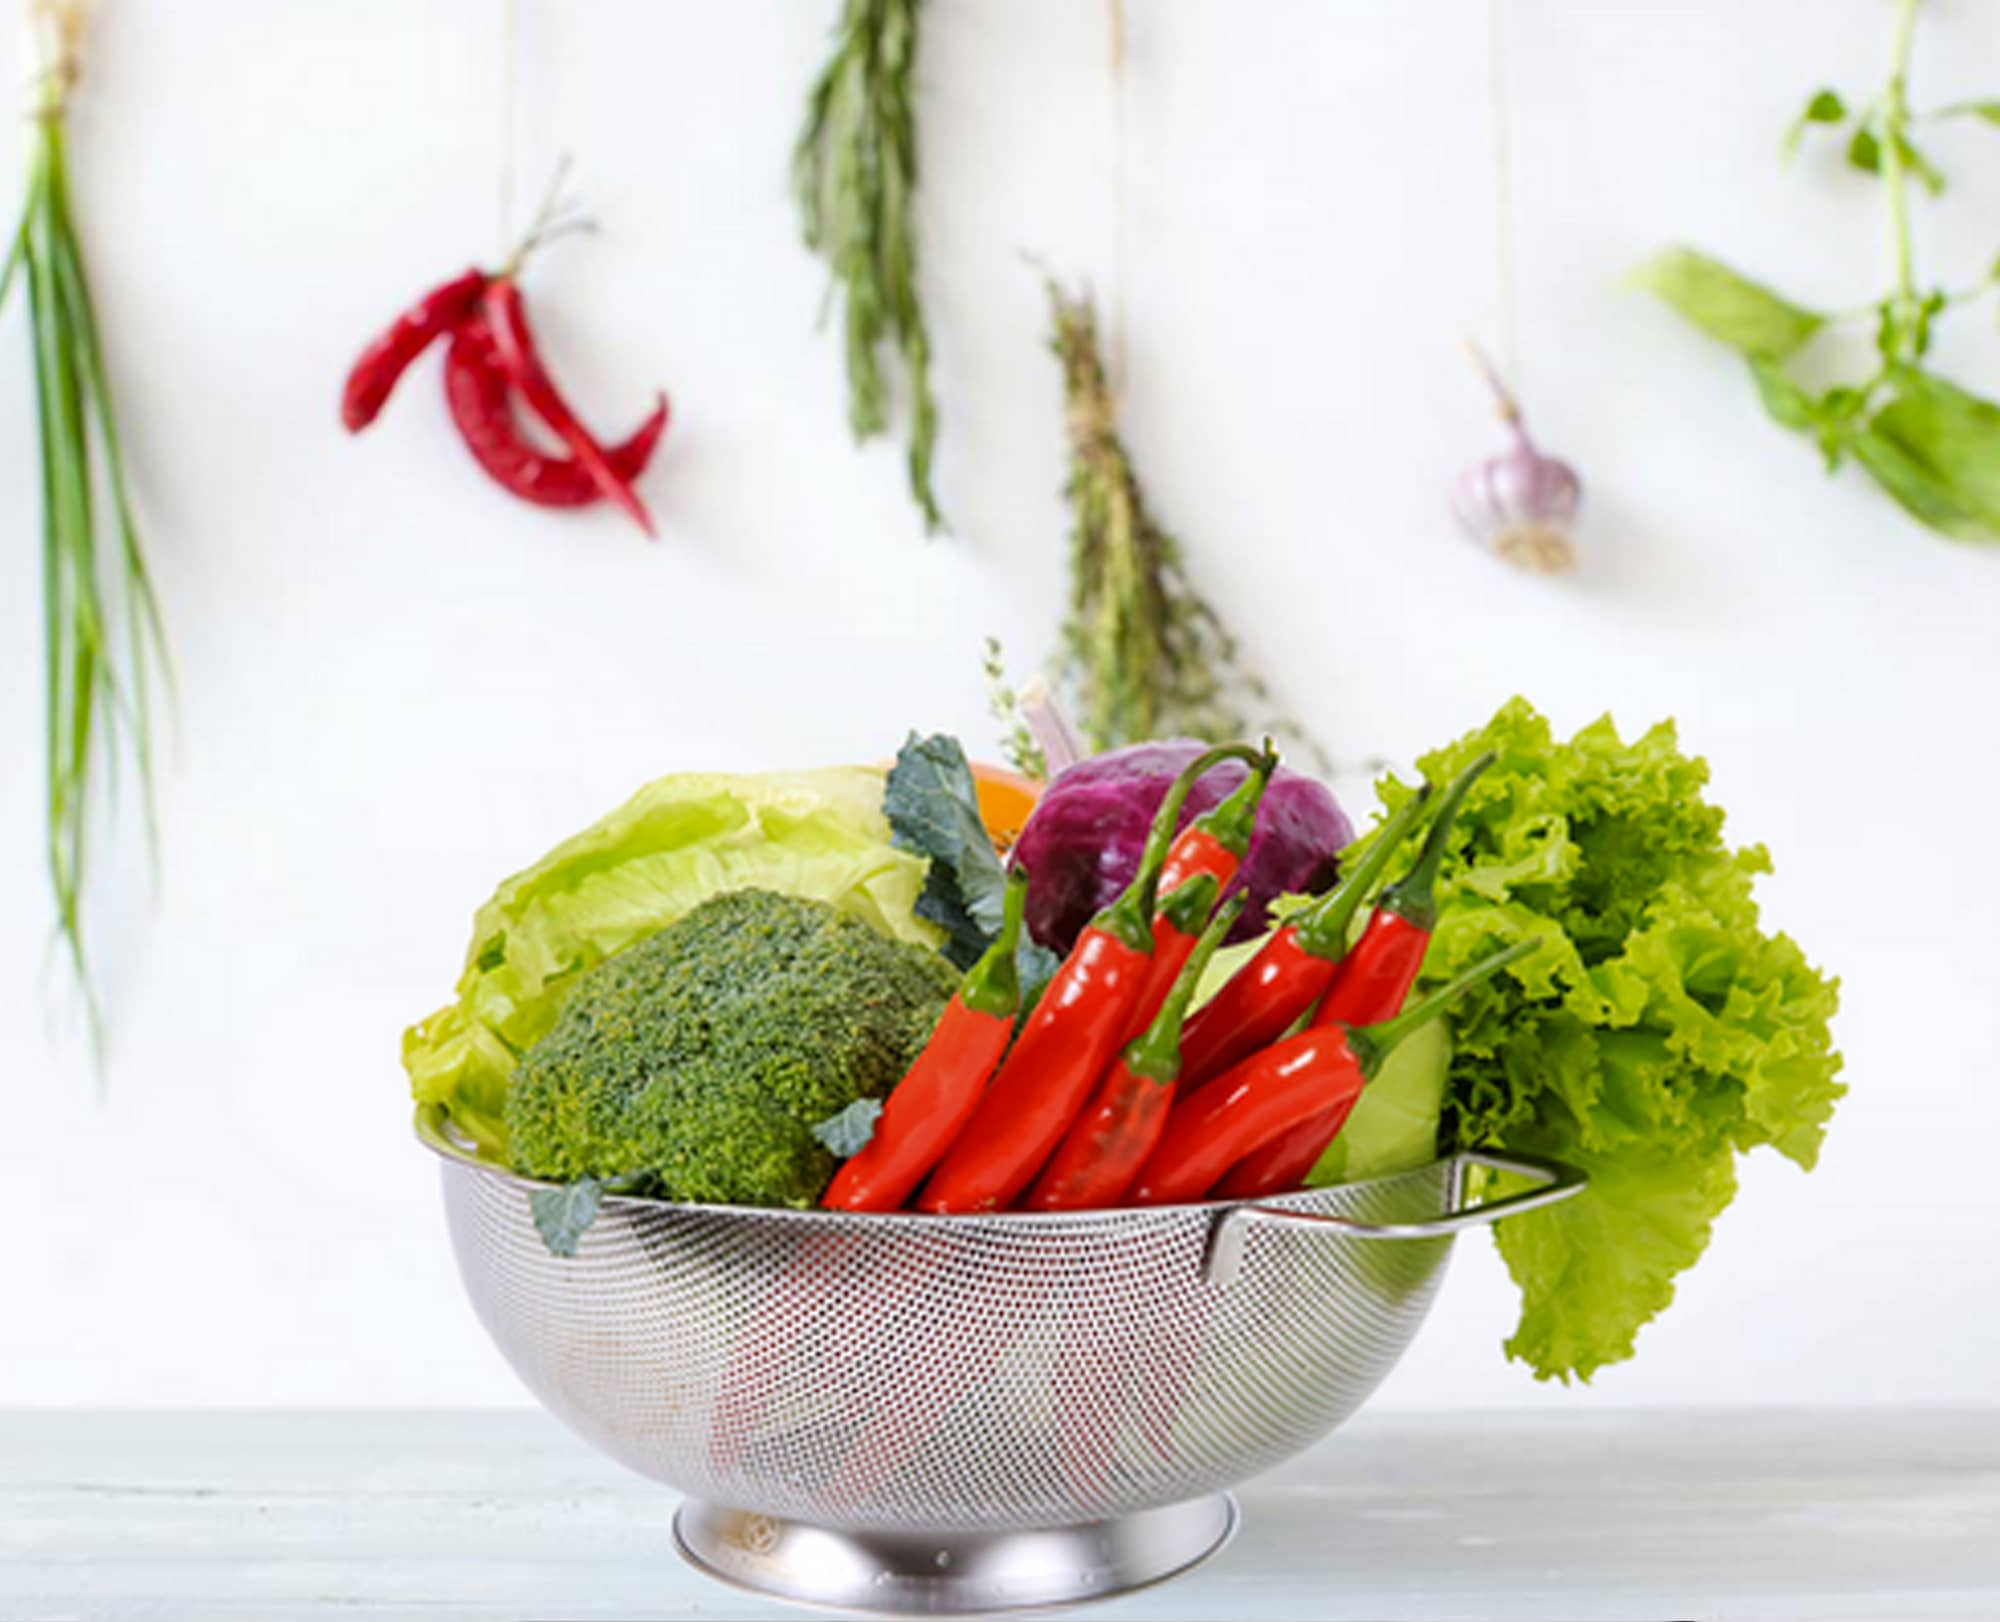 Thank to big size (5 quart), Benchusch Premium Stainless Steel Colander can store many vegetables together